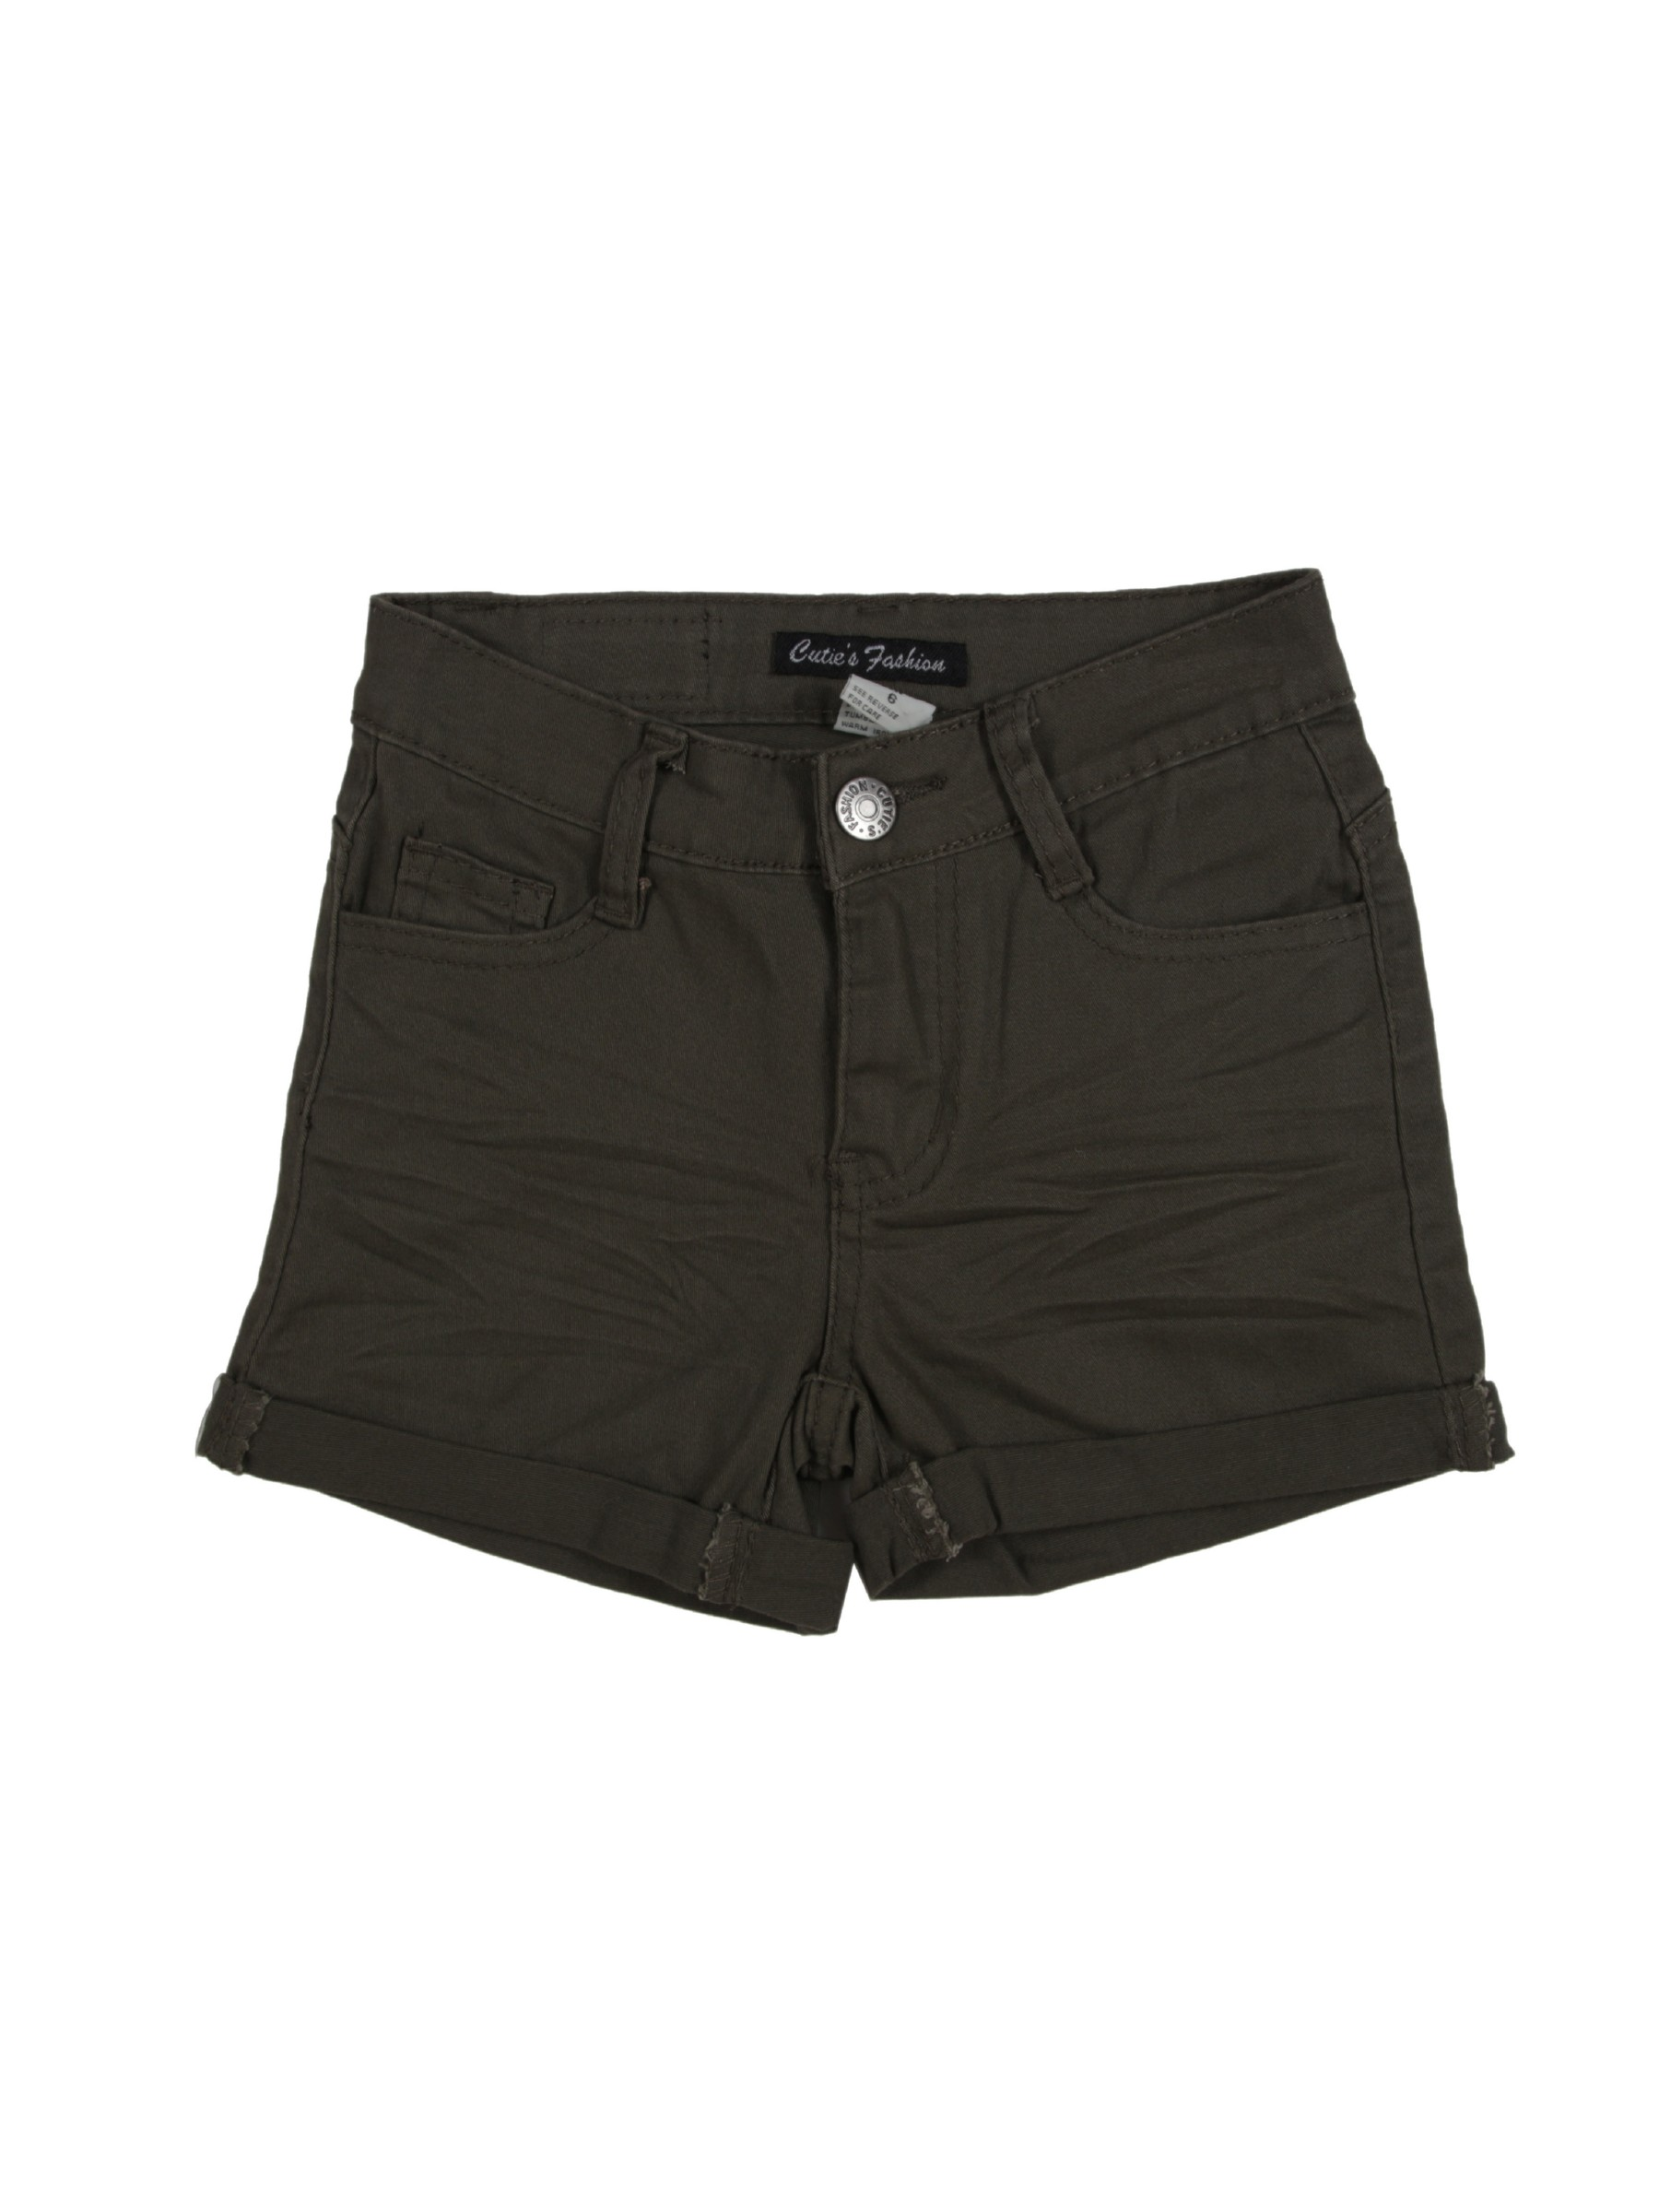 Girls' Stretch 5 Pockets Basic Colored Roll-up Shorts